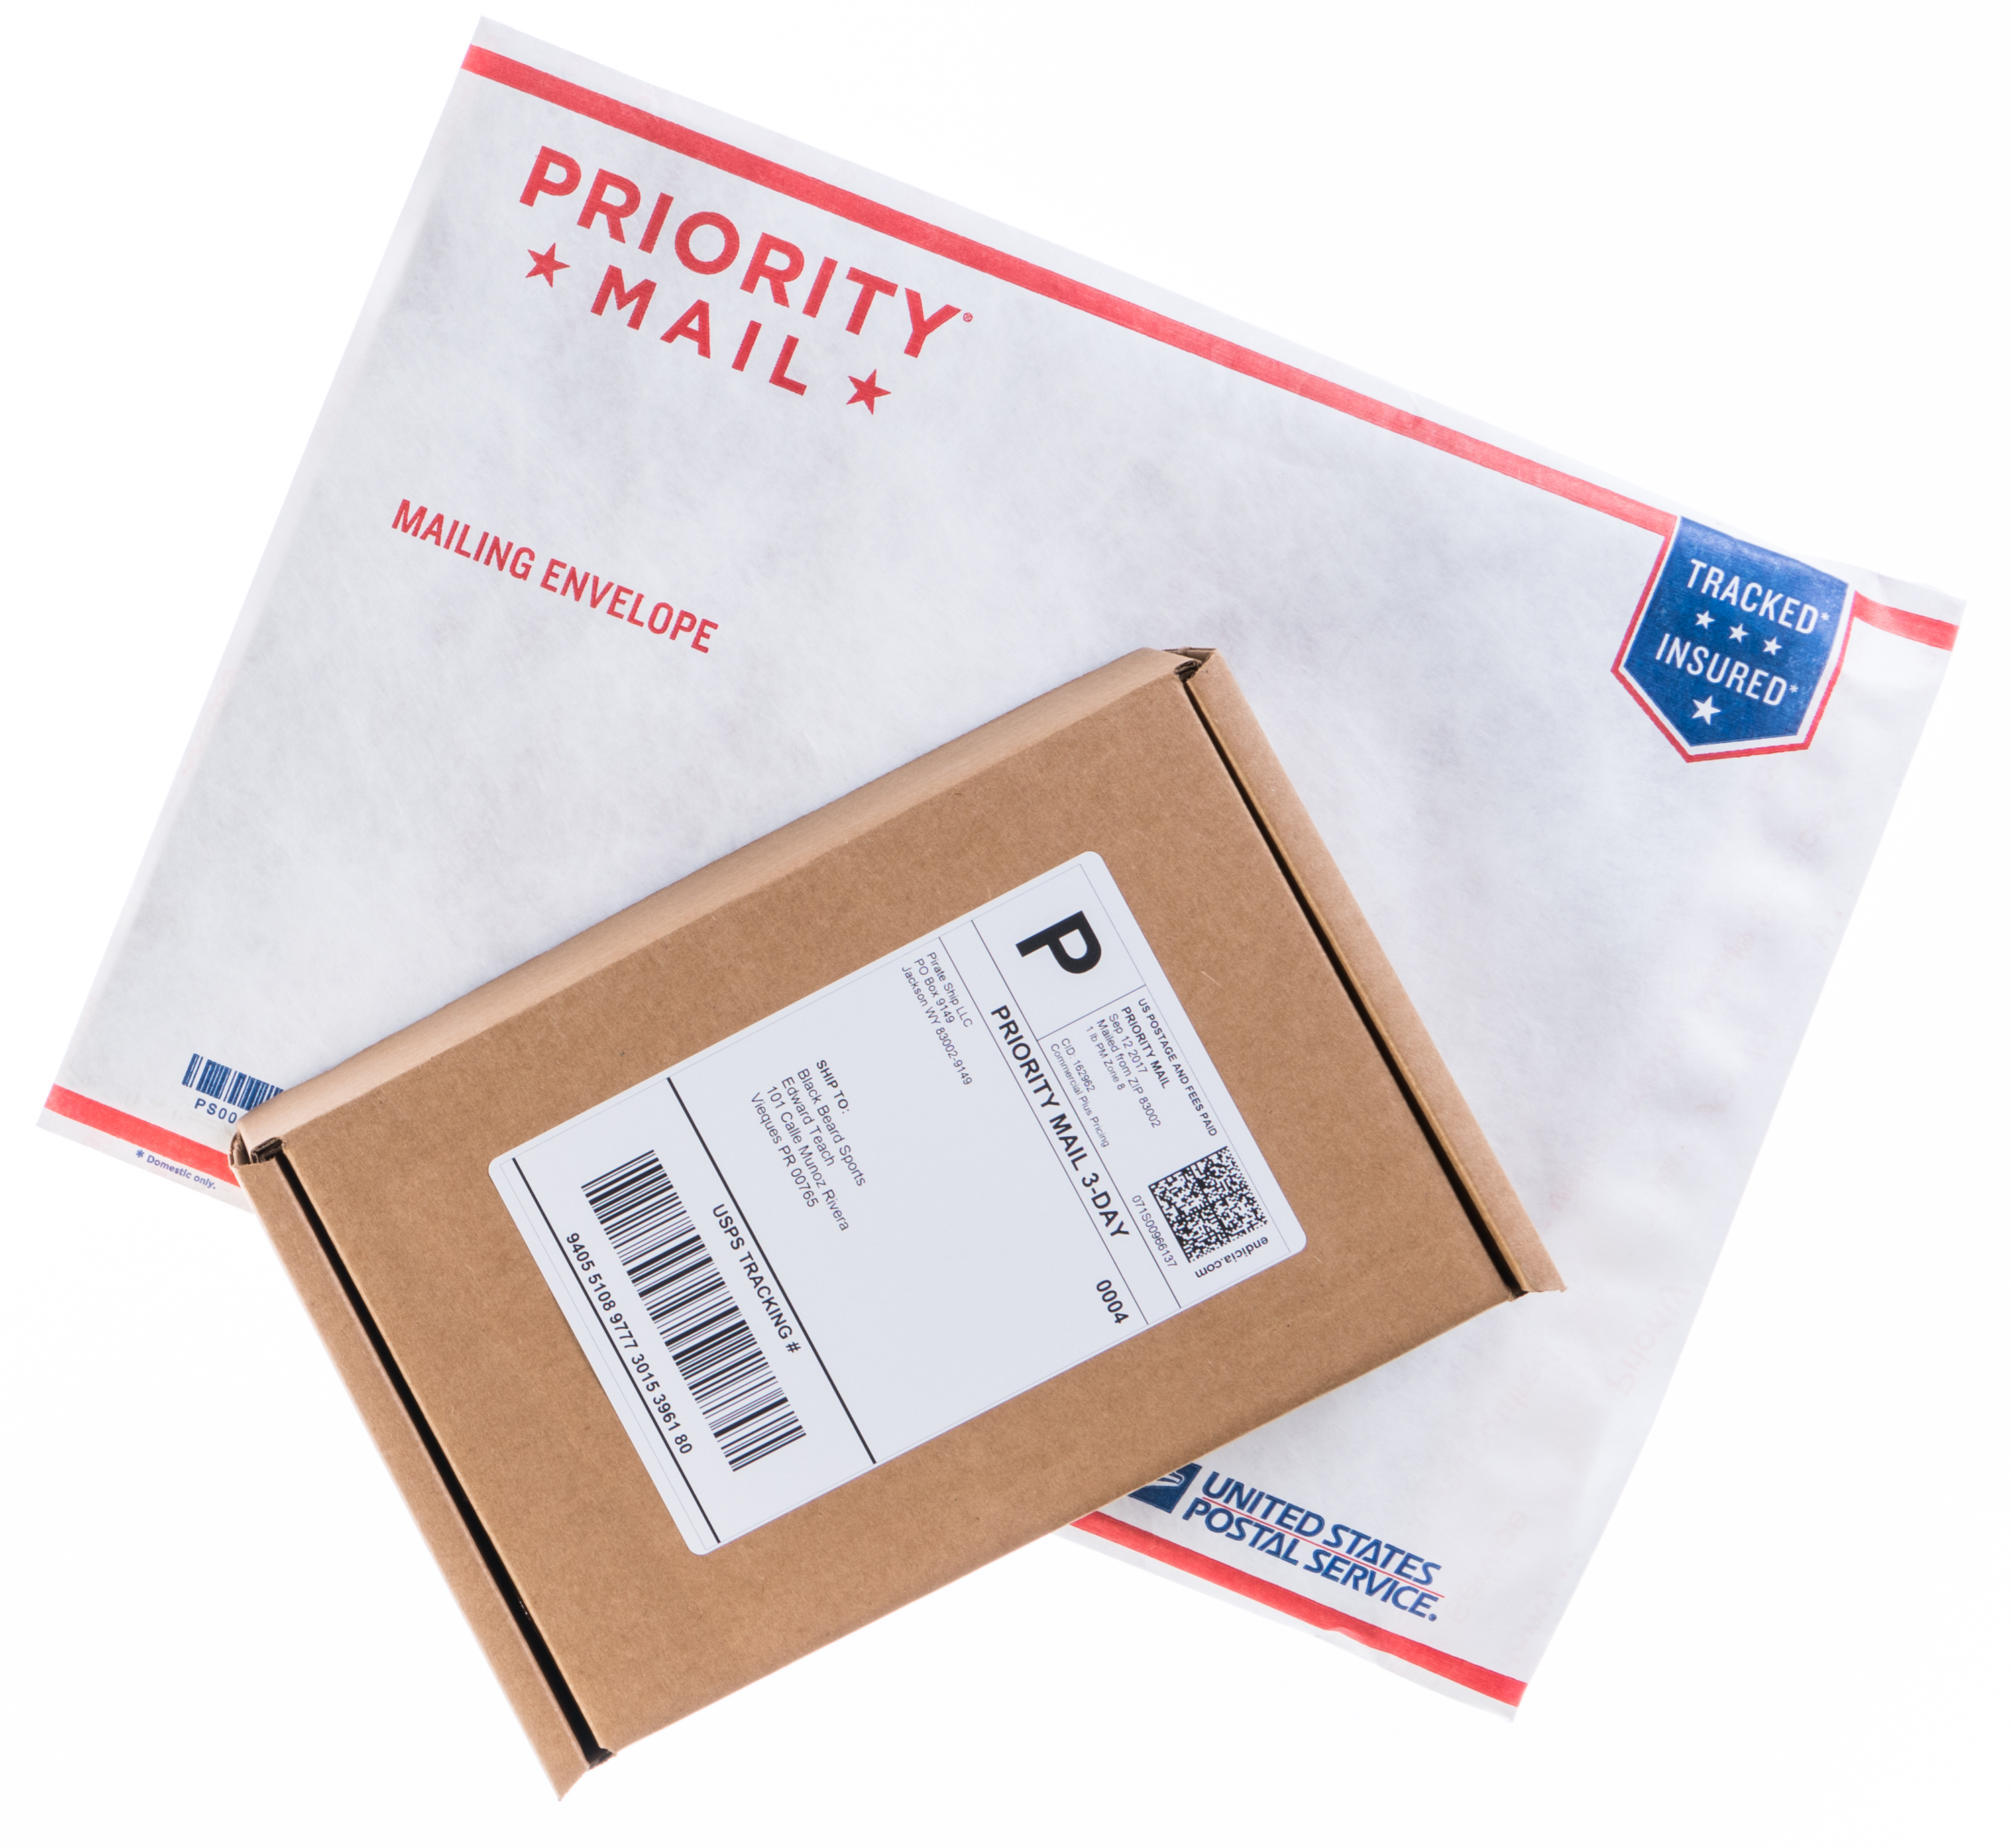 USPS Priority Mail mailing envelope and cardboard package